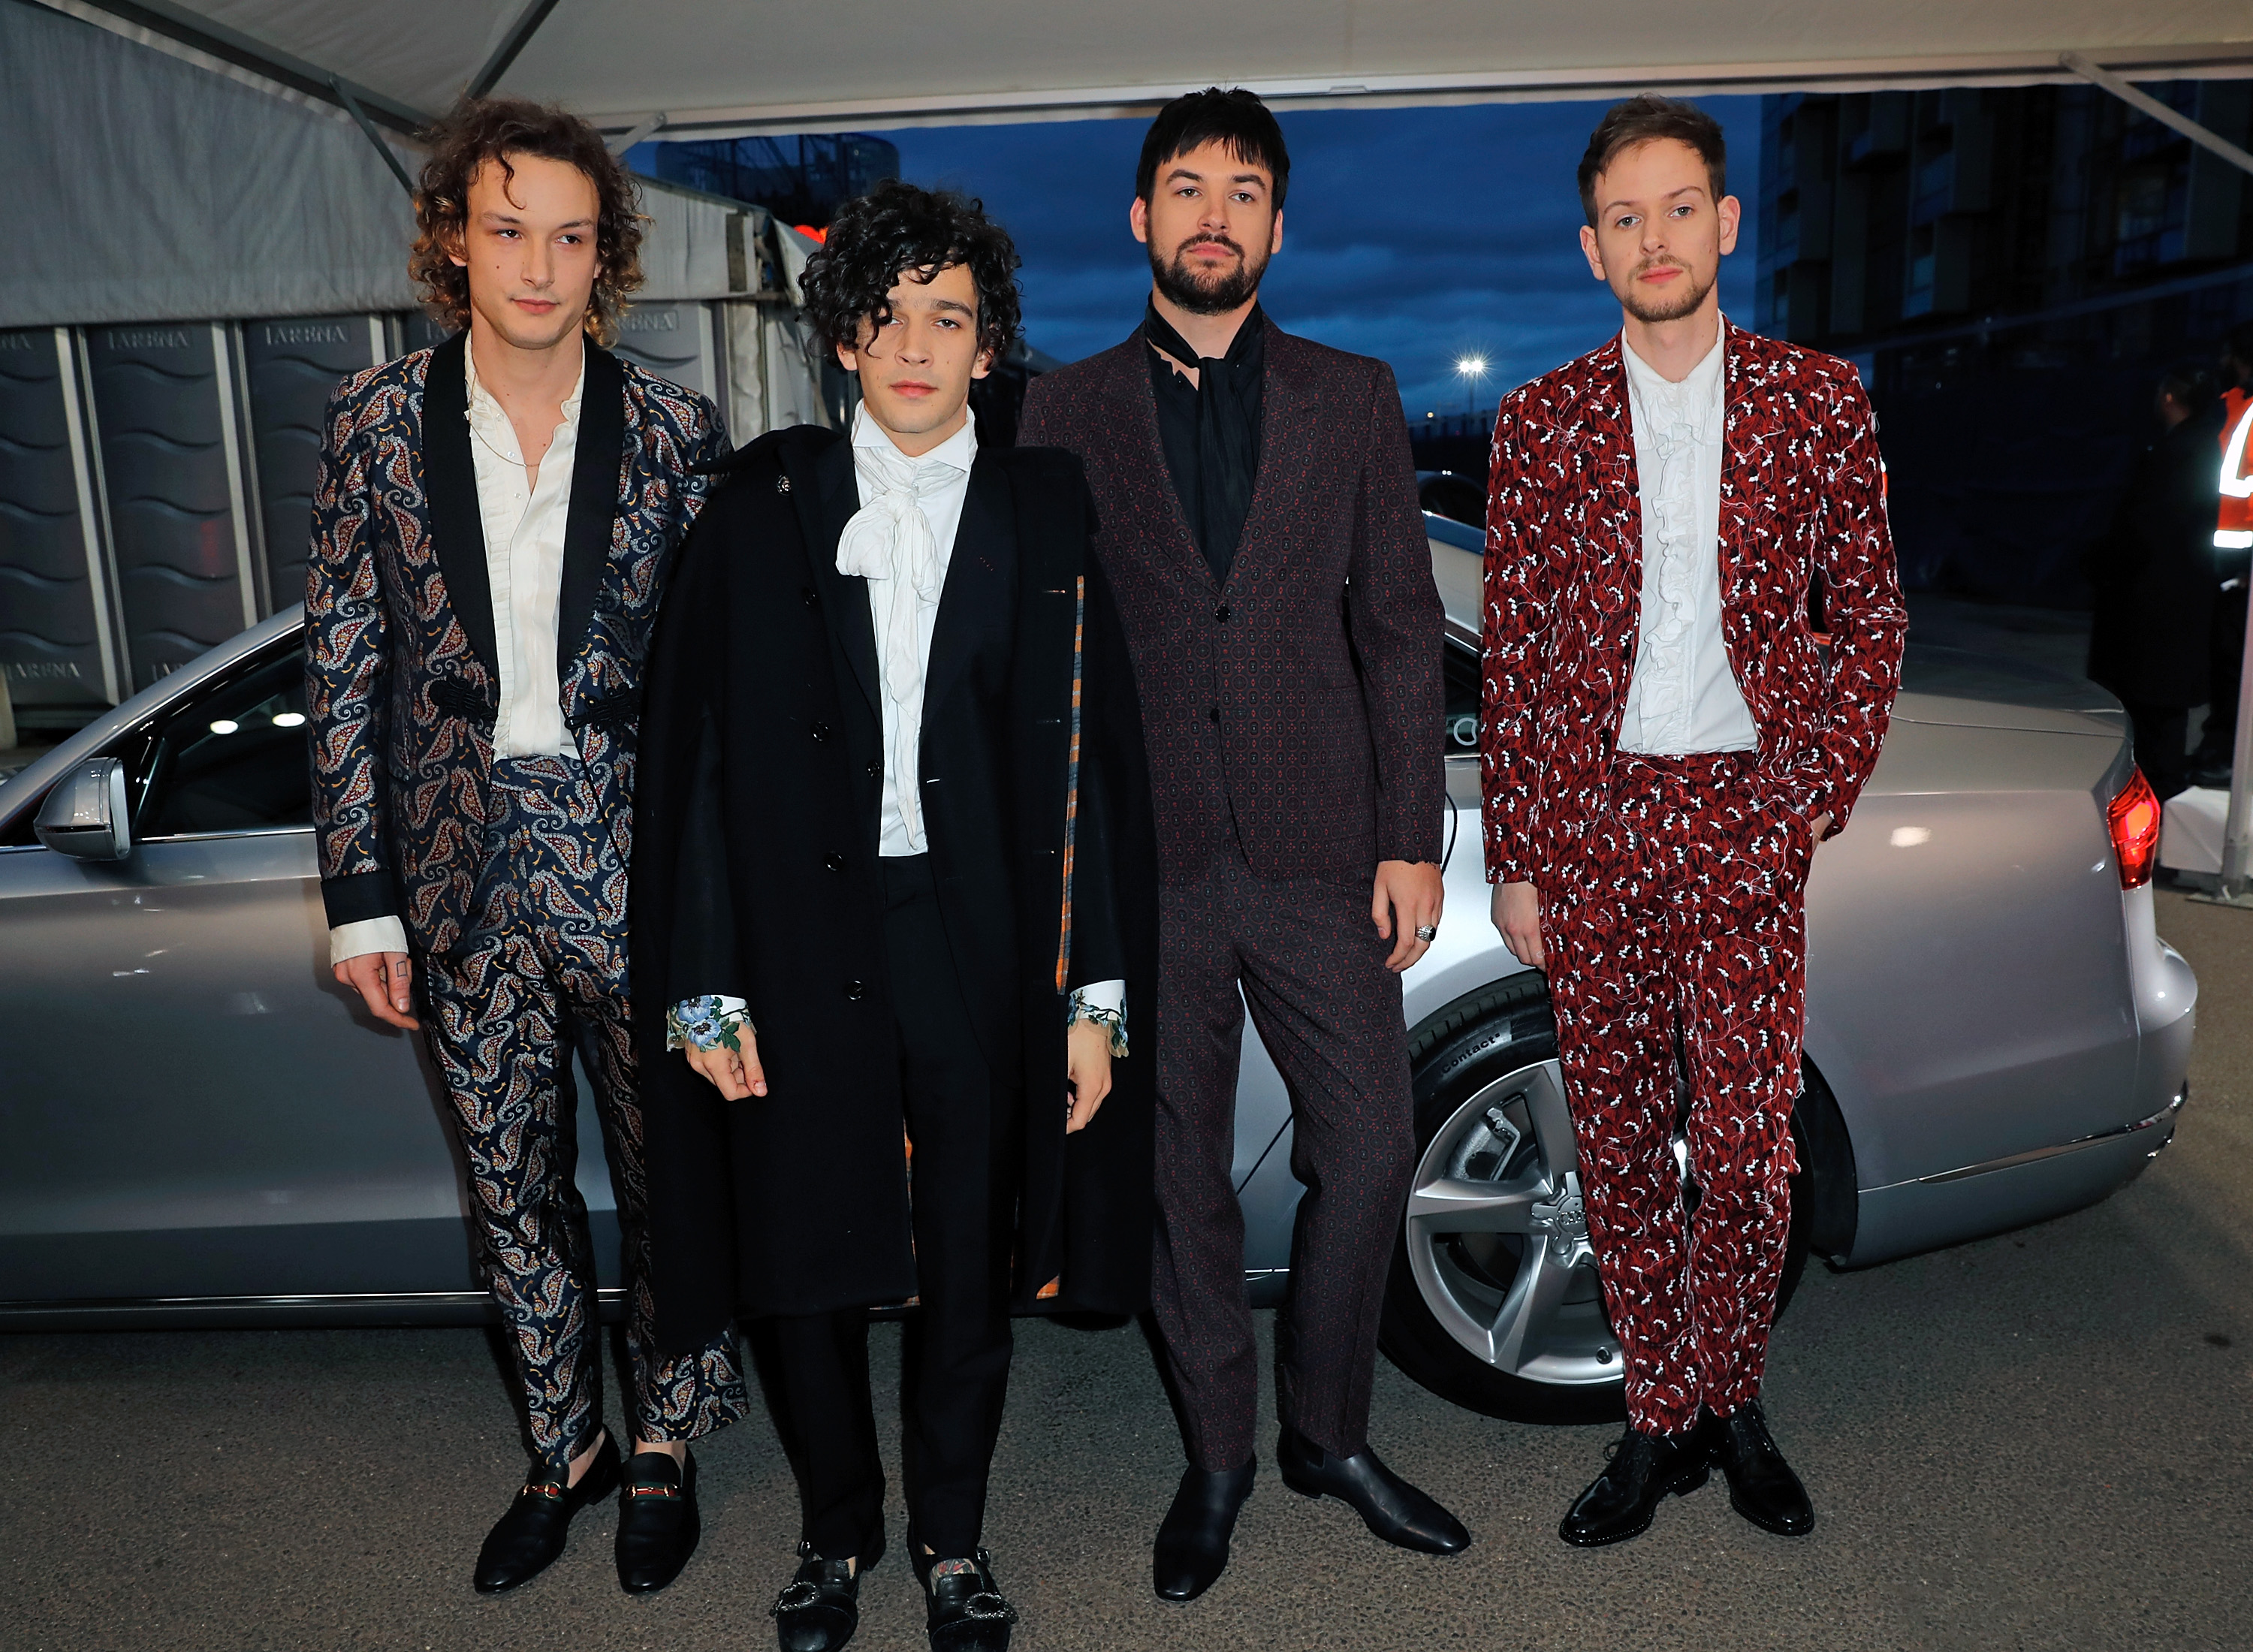 The 1975 BRITs 2017 Red Carpet Arrivals